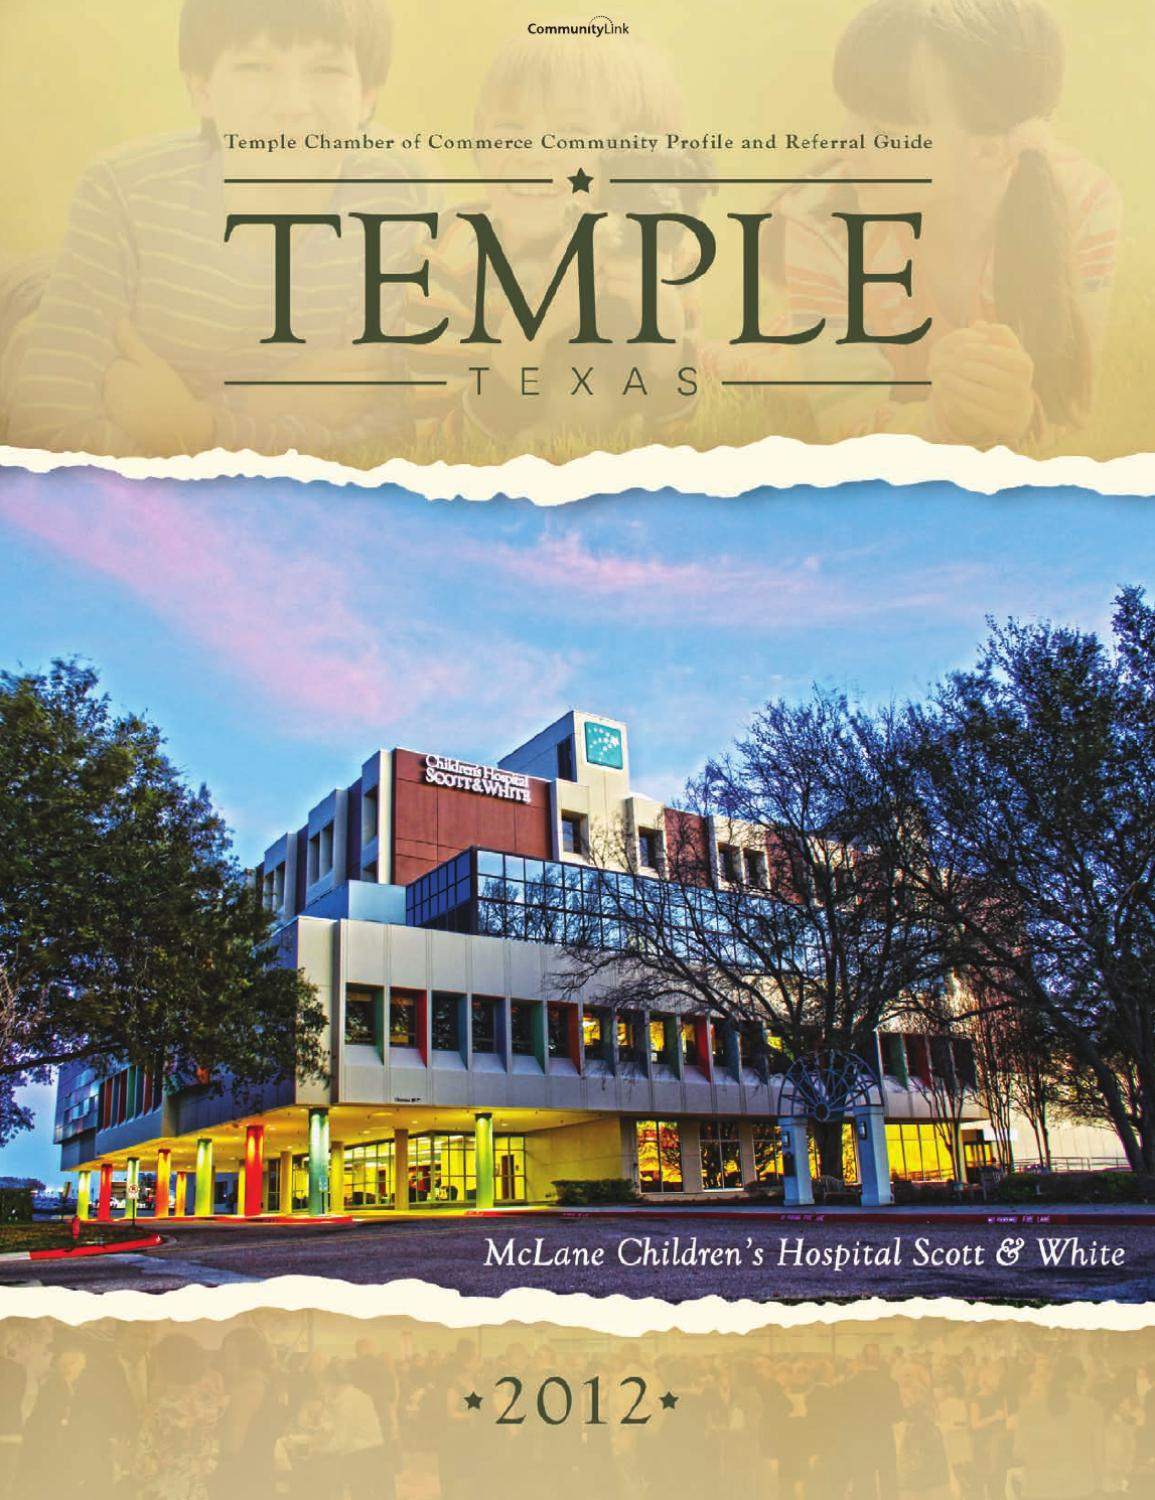 Temple, TX 2012 Community Profile and Referral Guide by